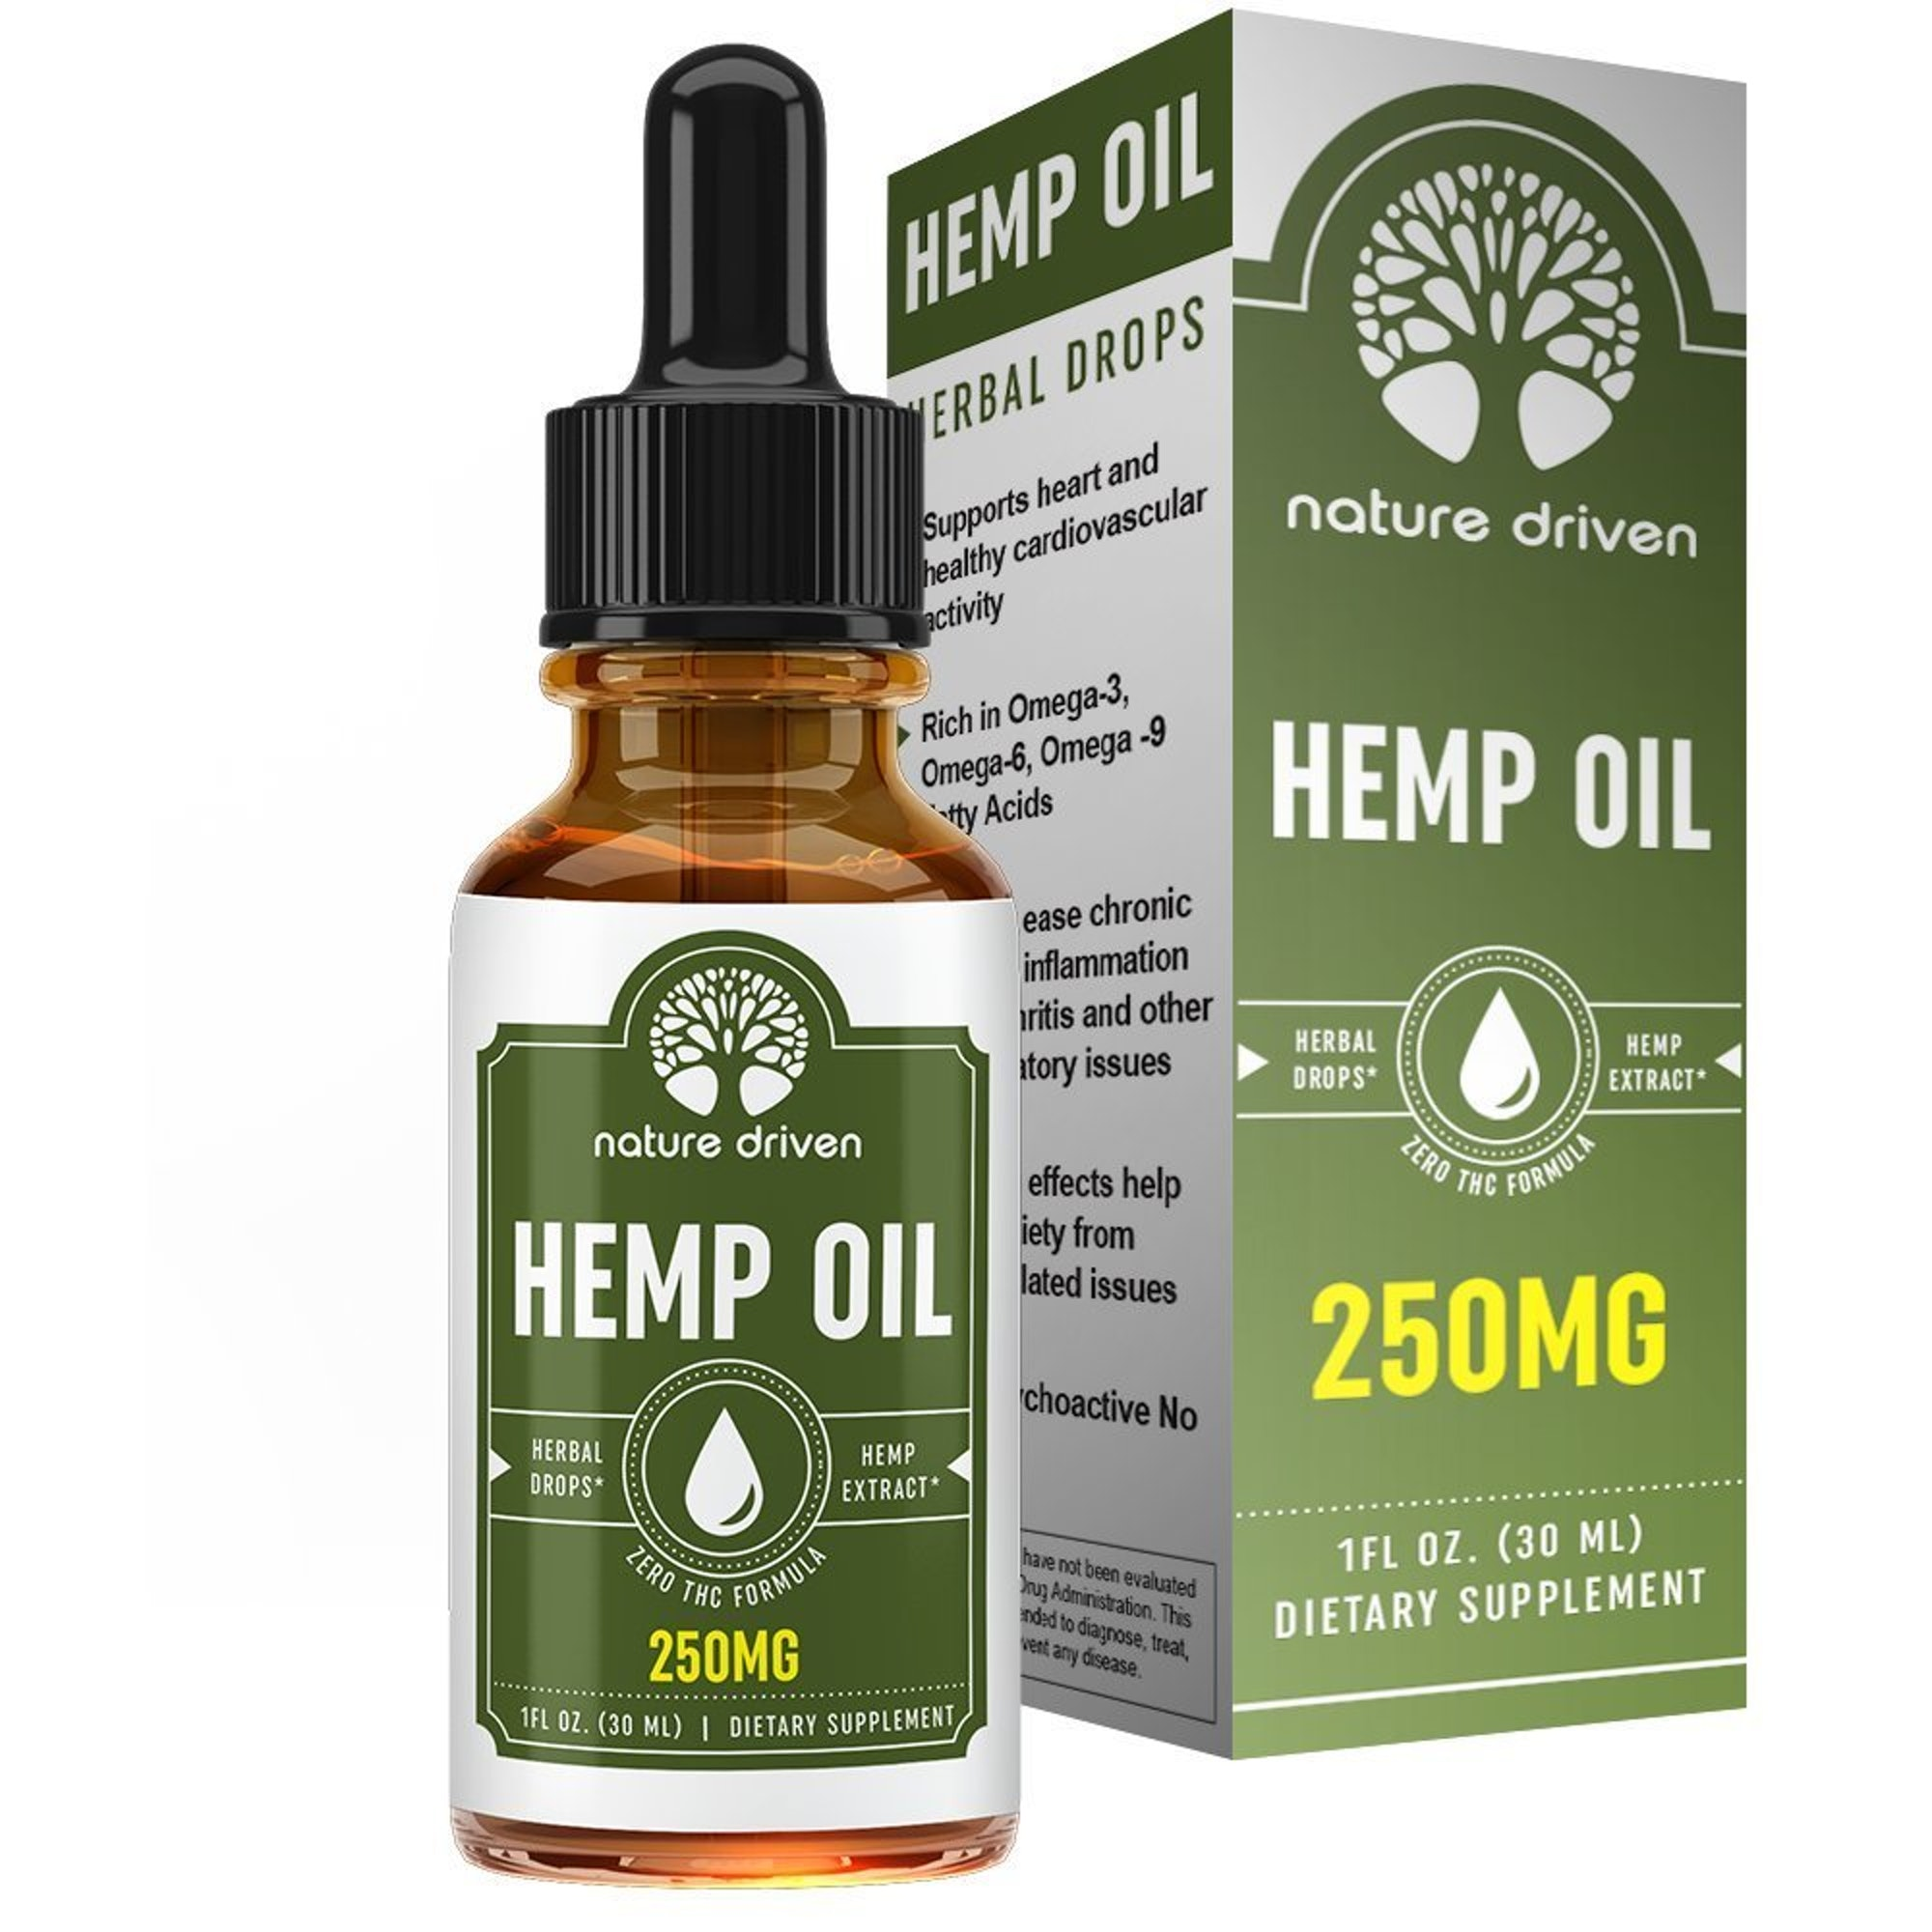 10 Hemp Oil Products On Amazon For Curious First-Time